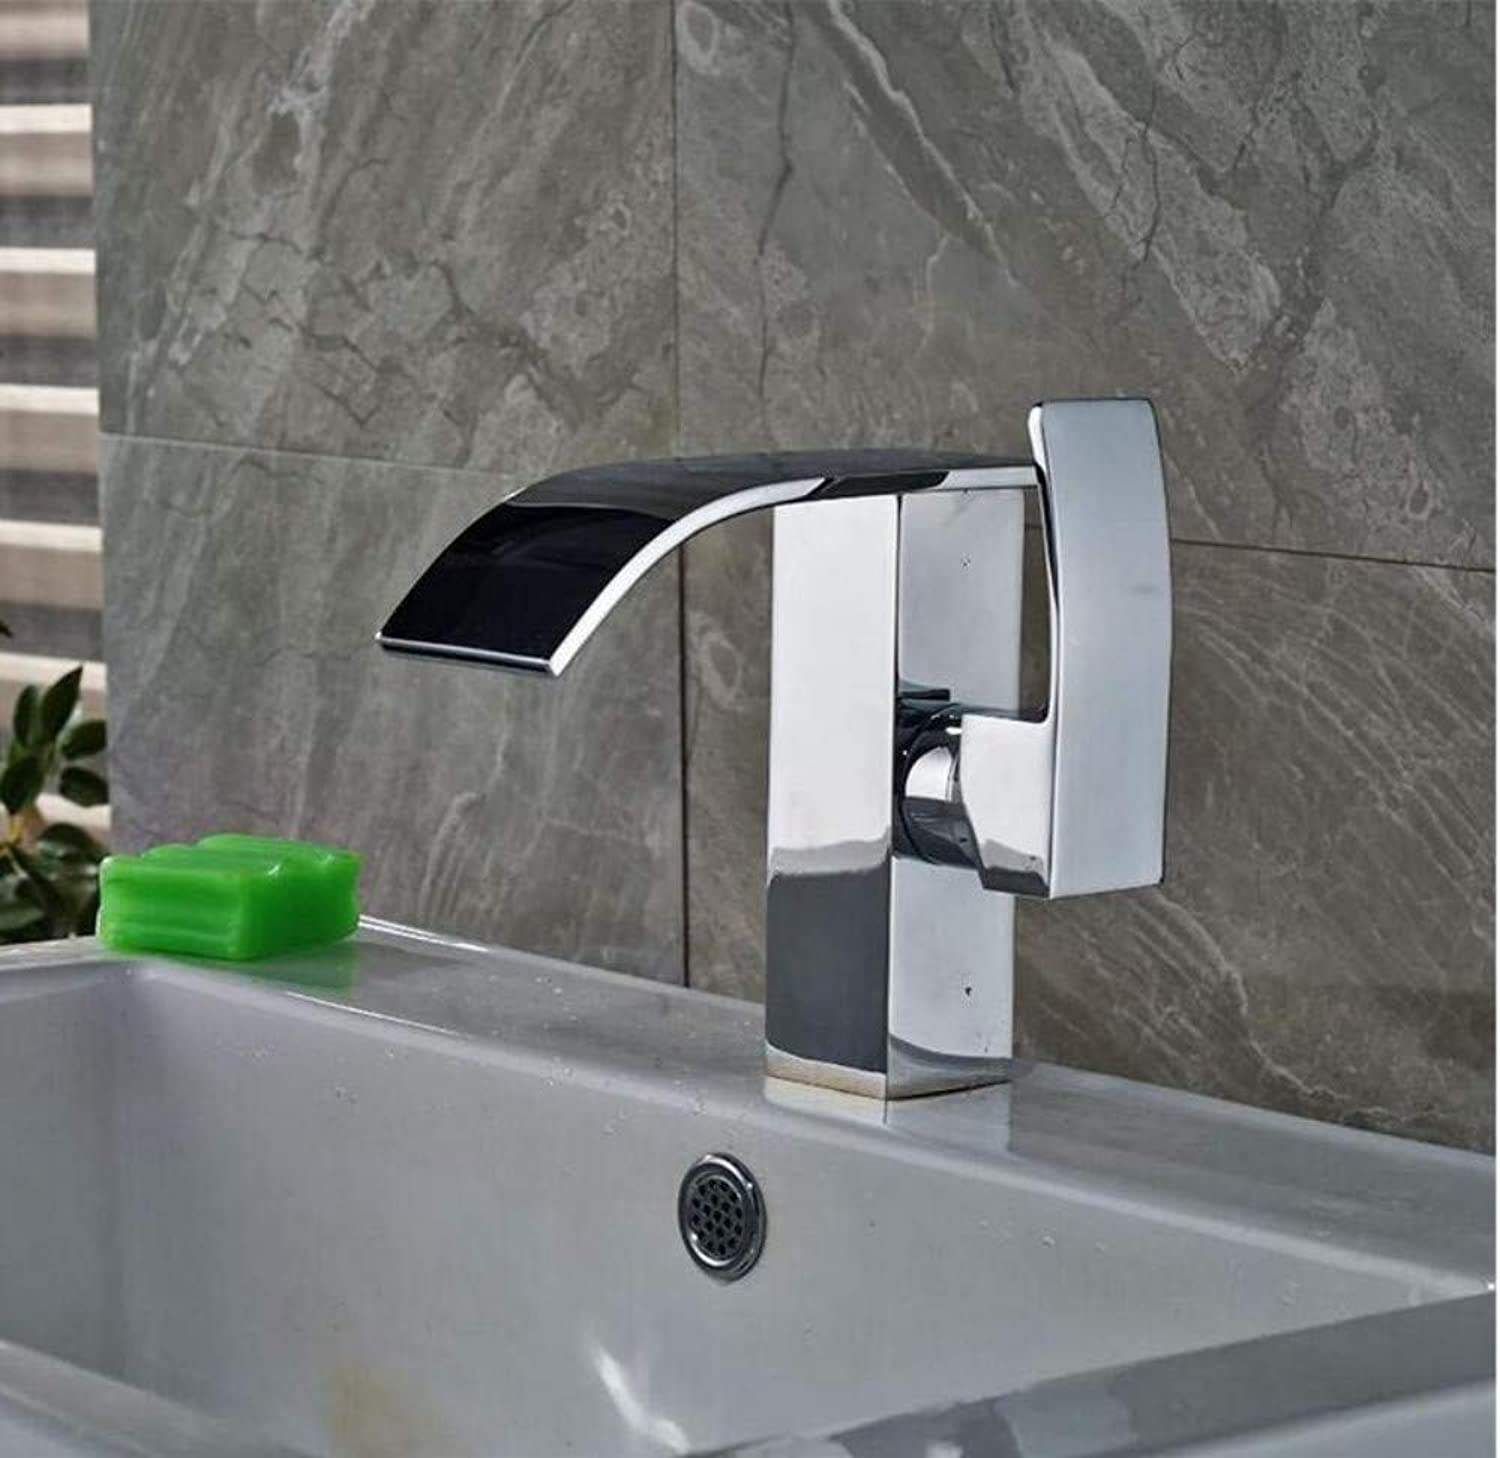 Brass Wall Faucet Chrome Brass Faucetfaucet One Hole Basin Mixer Tap with Hole Cover